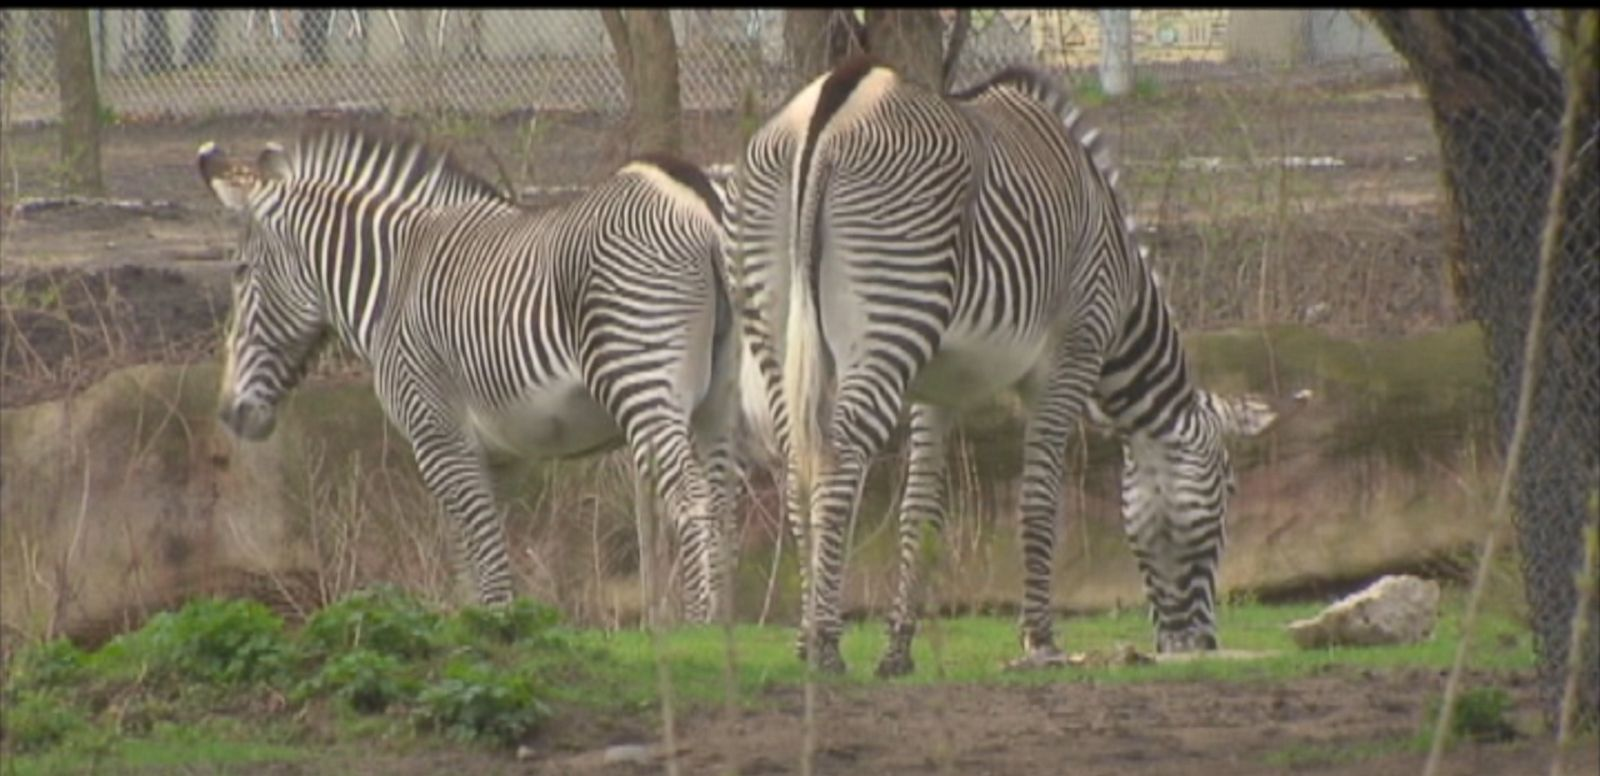 VIDEO: The zoo is planning to turn manure into reusable energy.